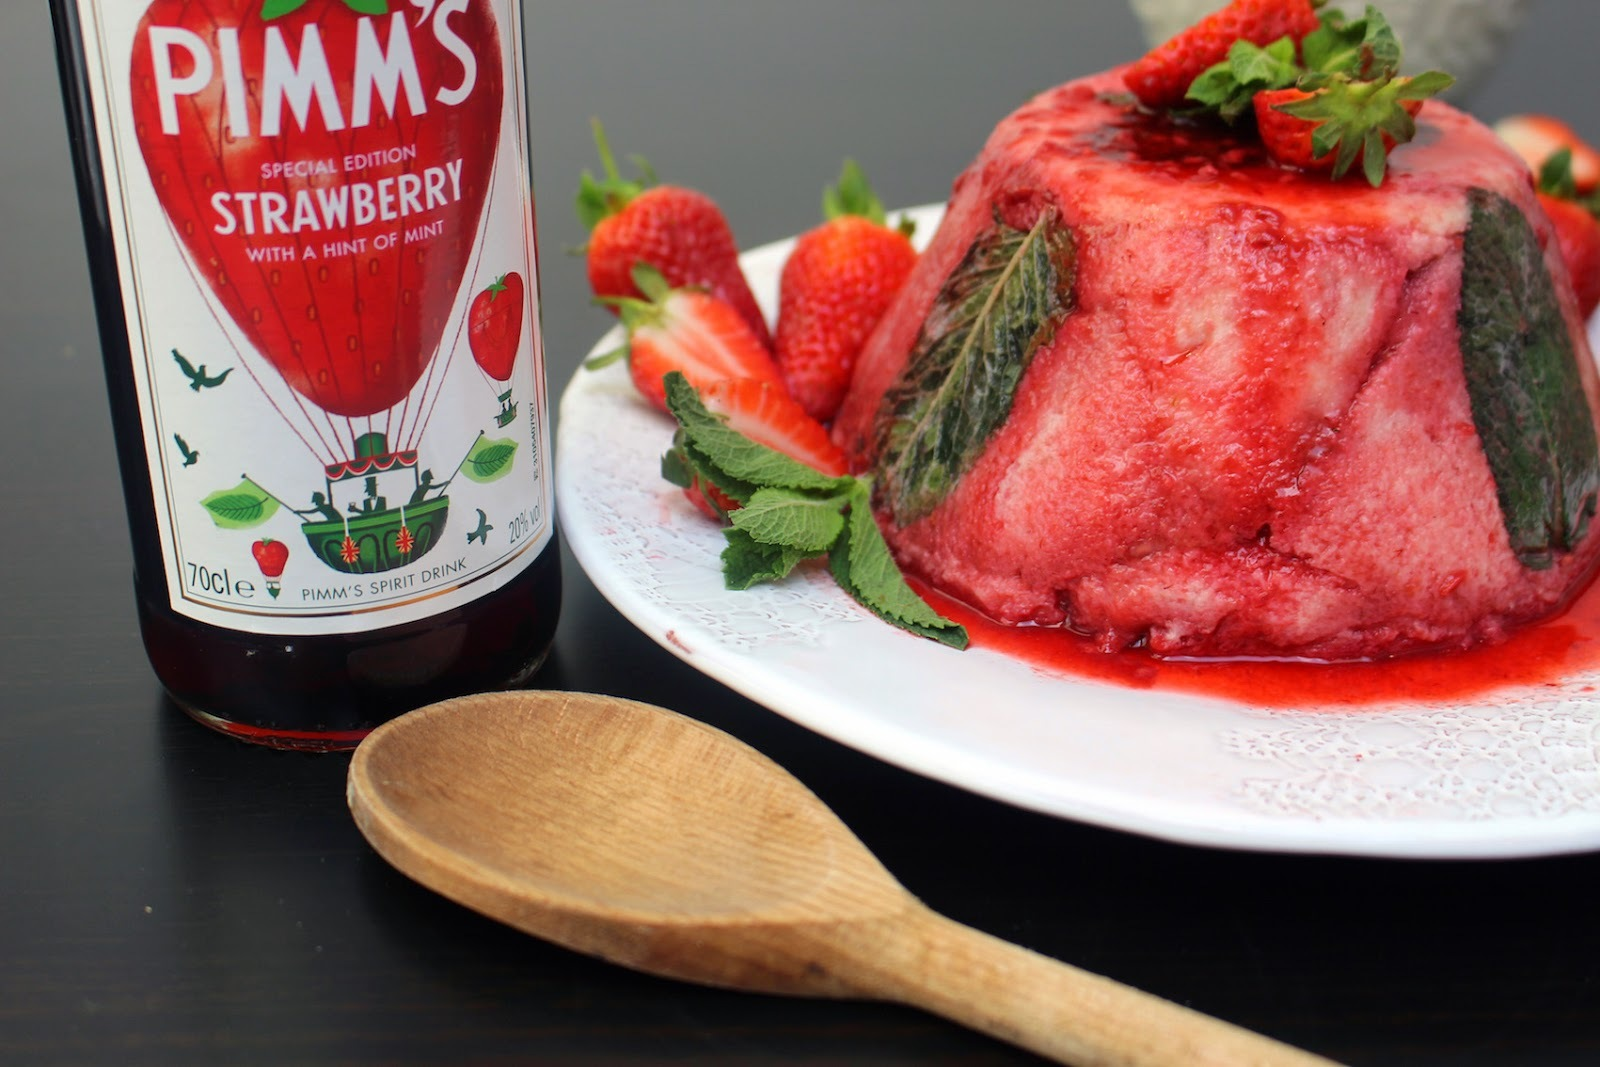 Pimm's strawberry and mint summer pudding